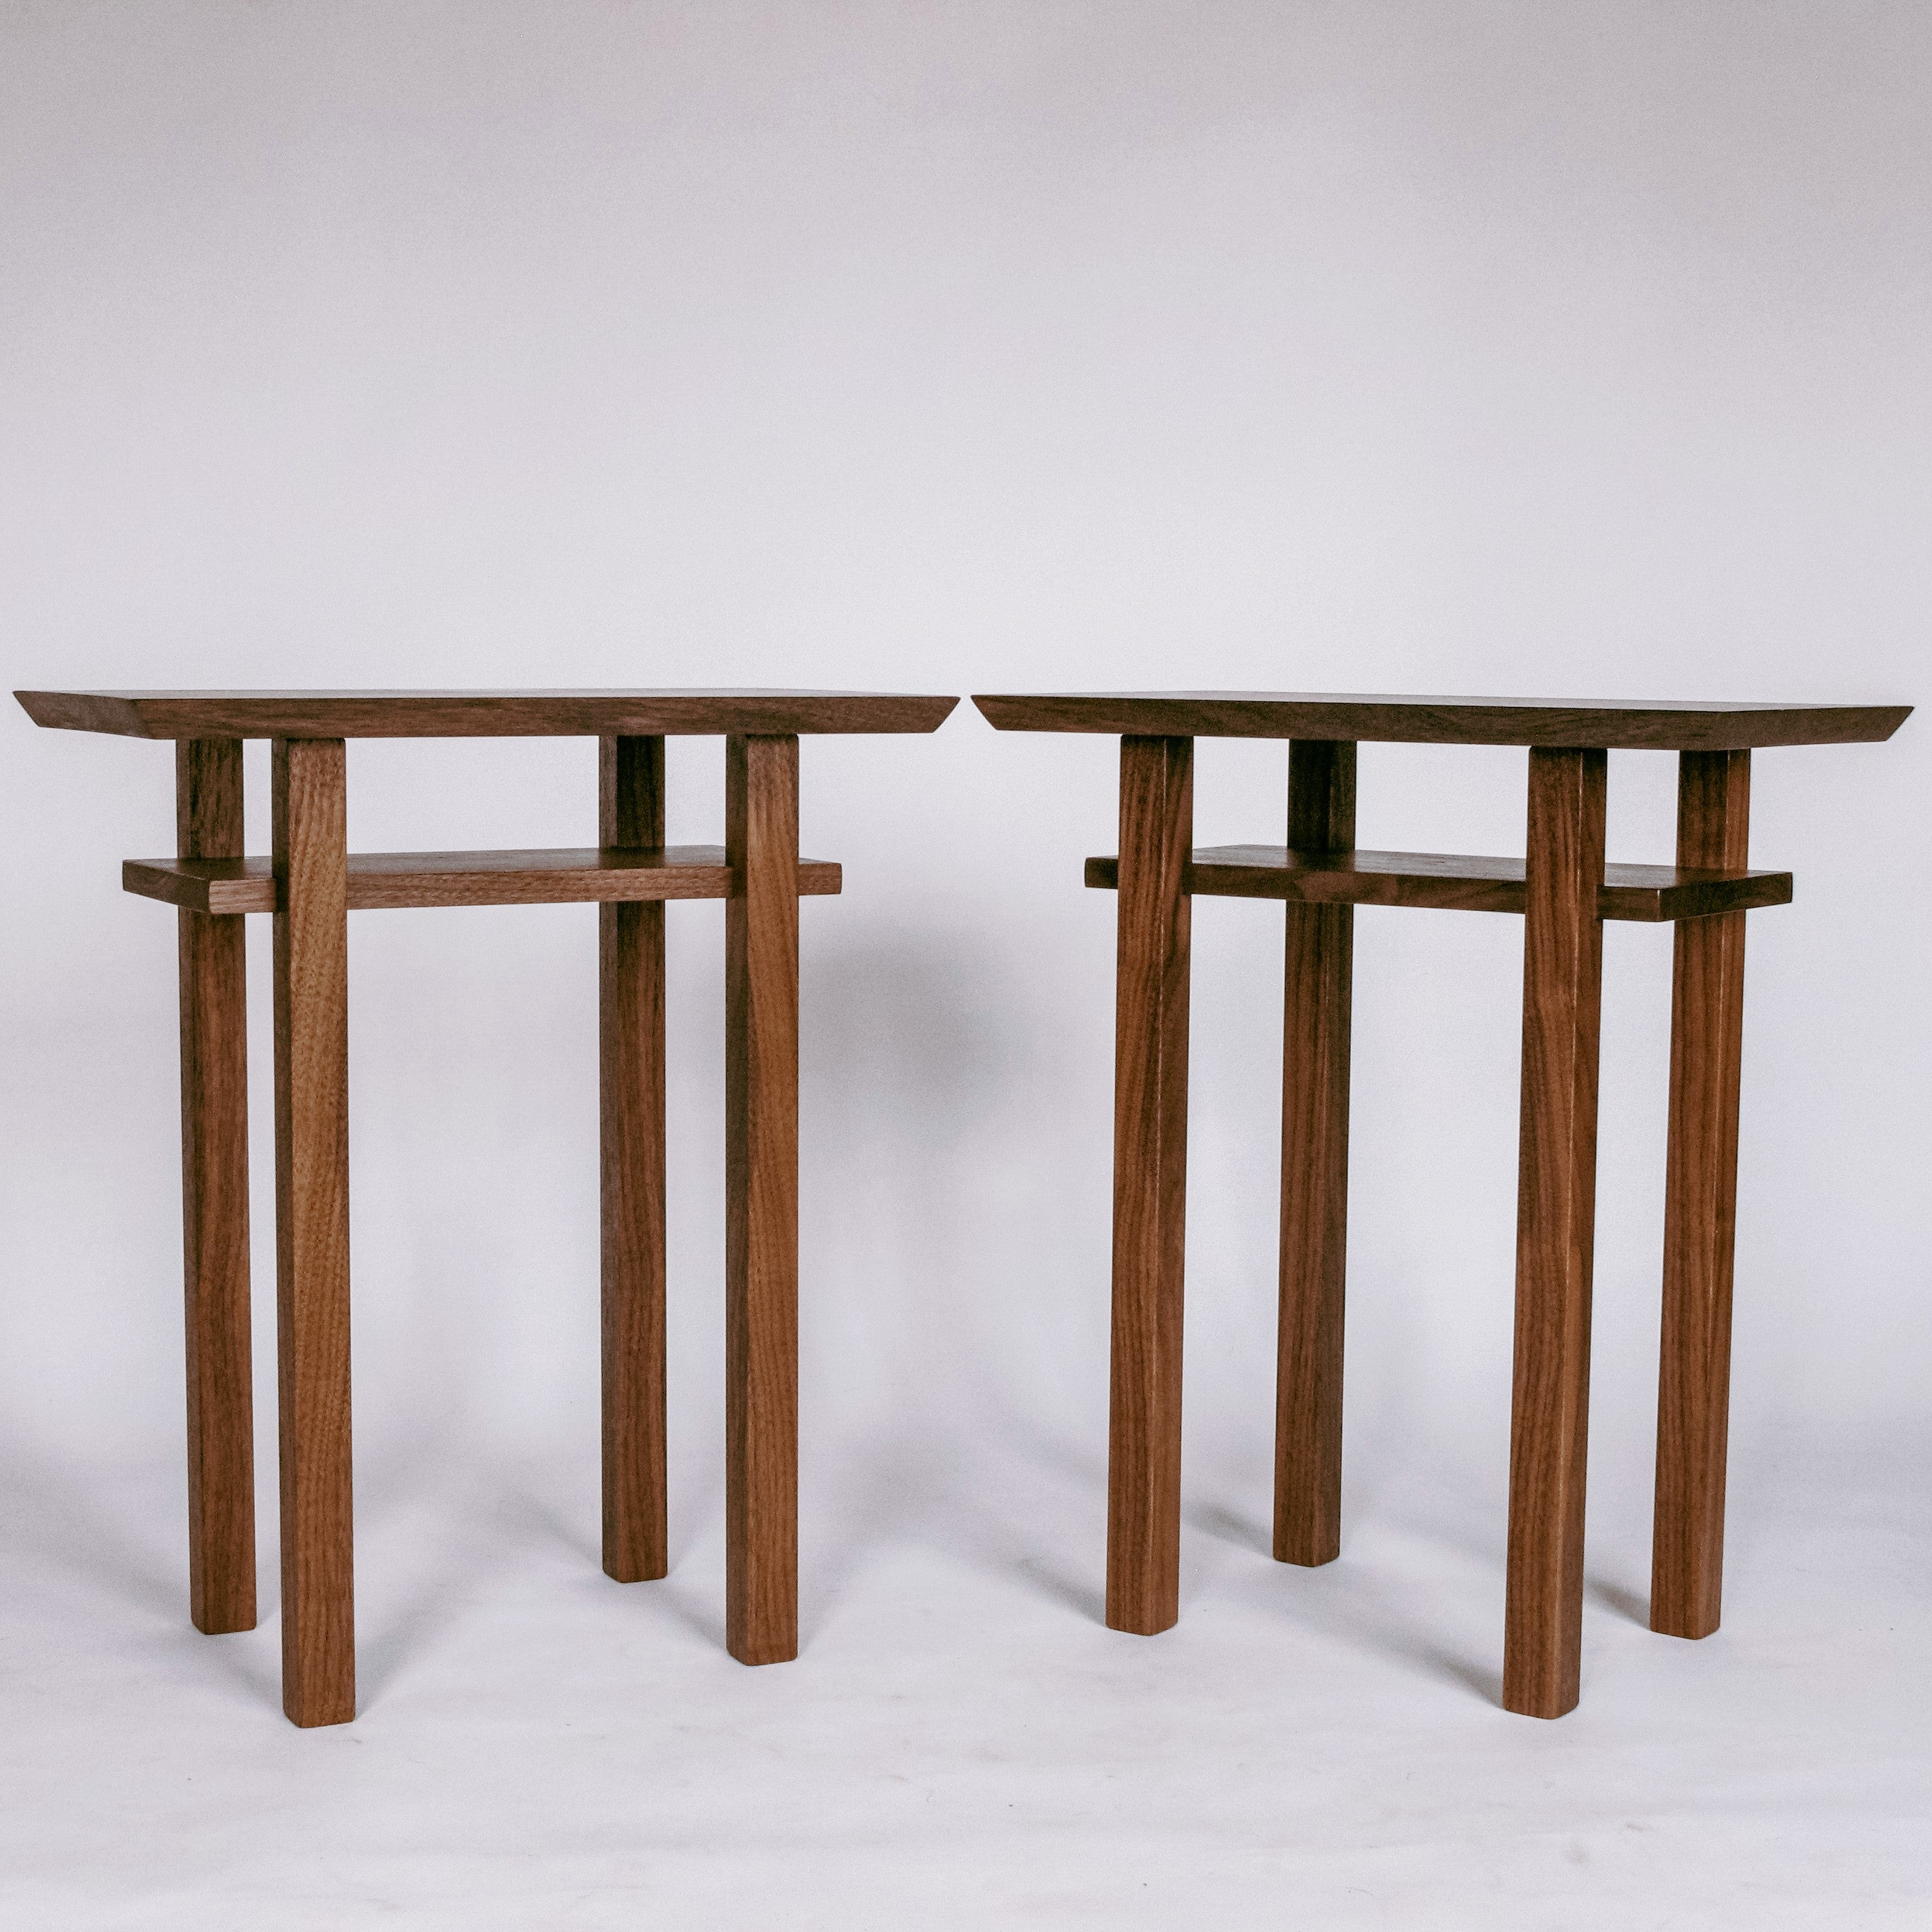 a pair of small end tables handmade from solid walnut